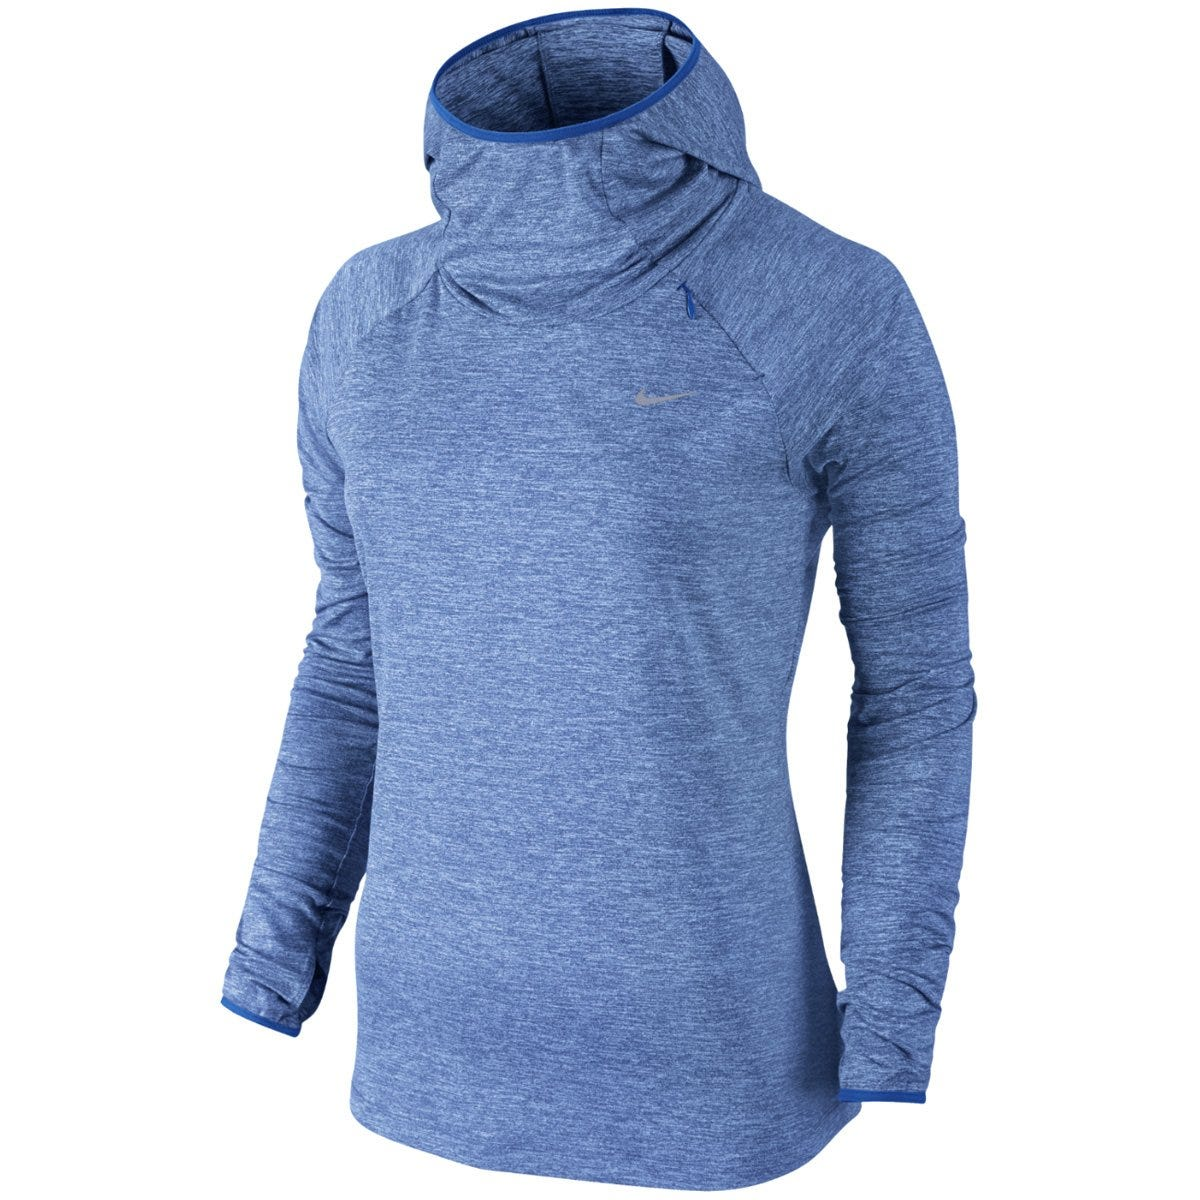 Nike Dry Element Women's Running Hoodie